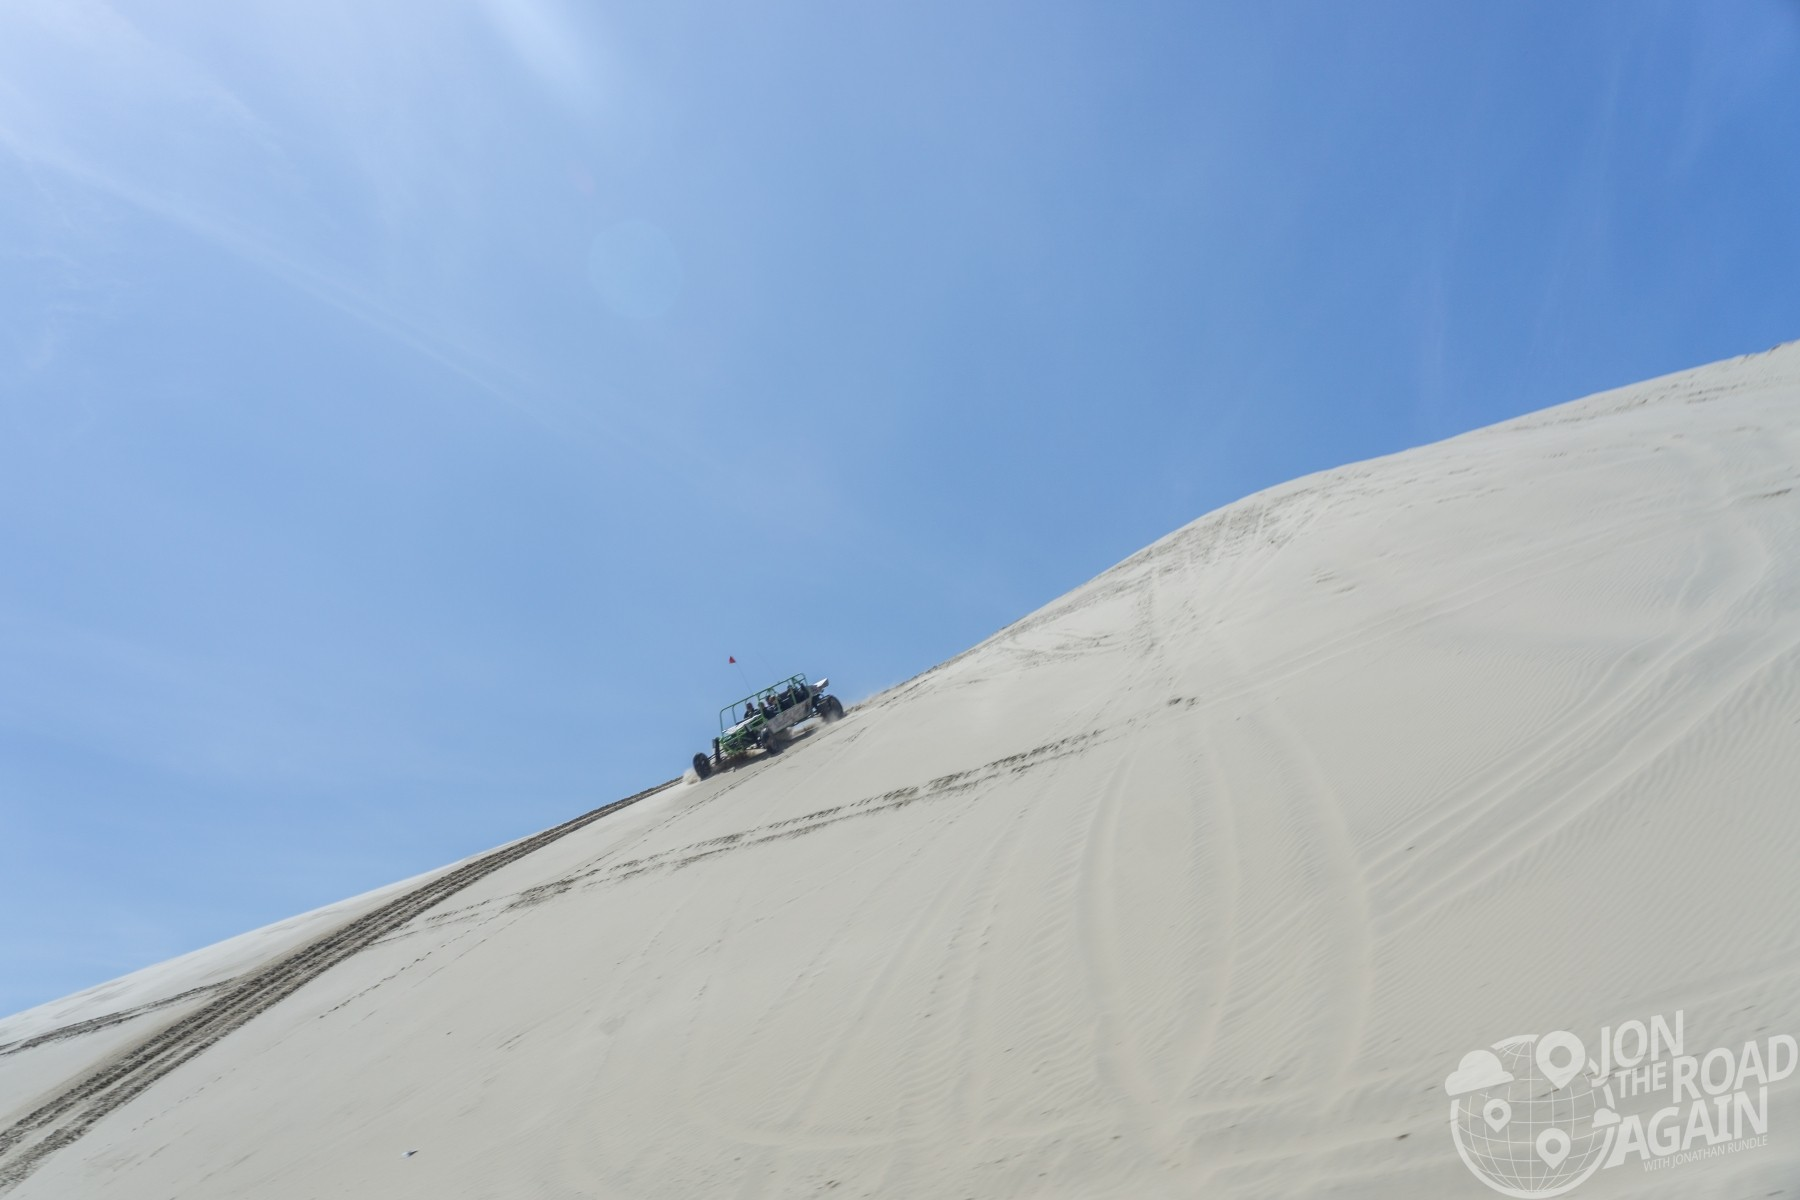 dune buggy at oregon dunes